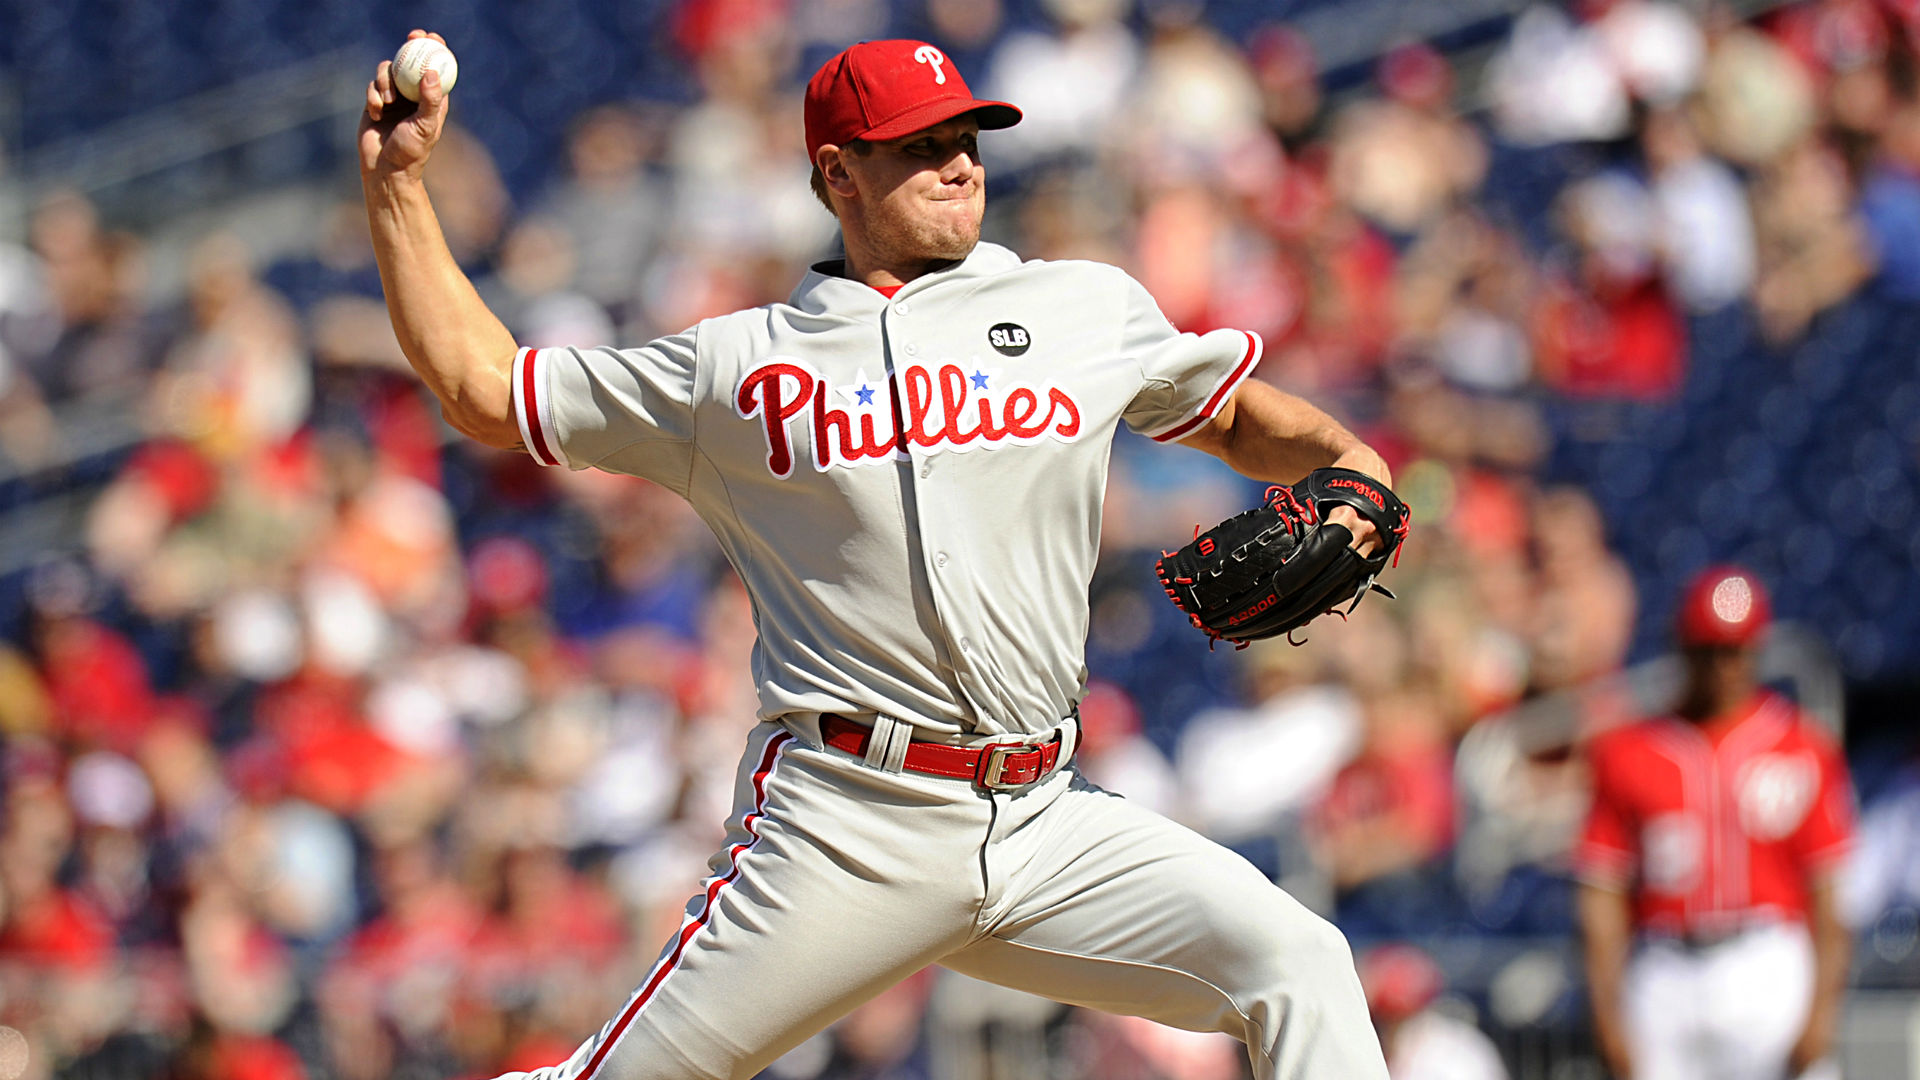 Jonathan Papelbon heading to Nationals from Phillies; assured he will close in D.C.